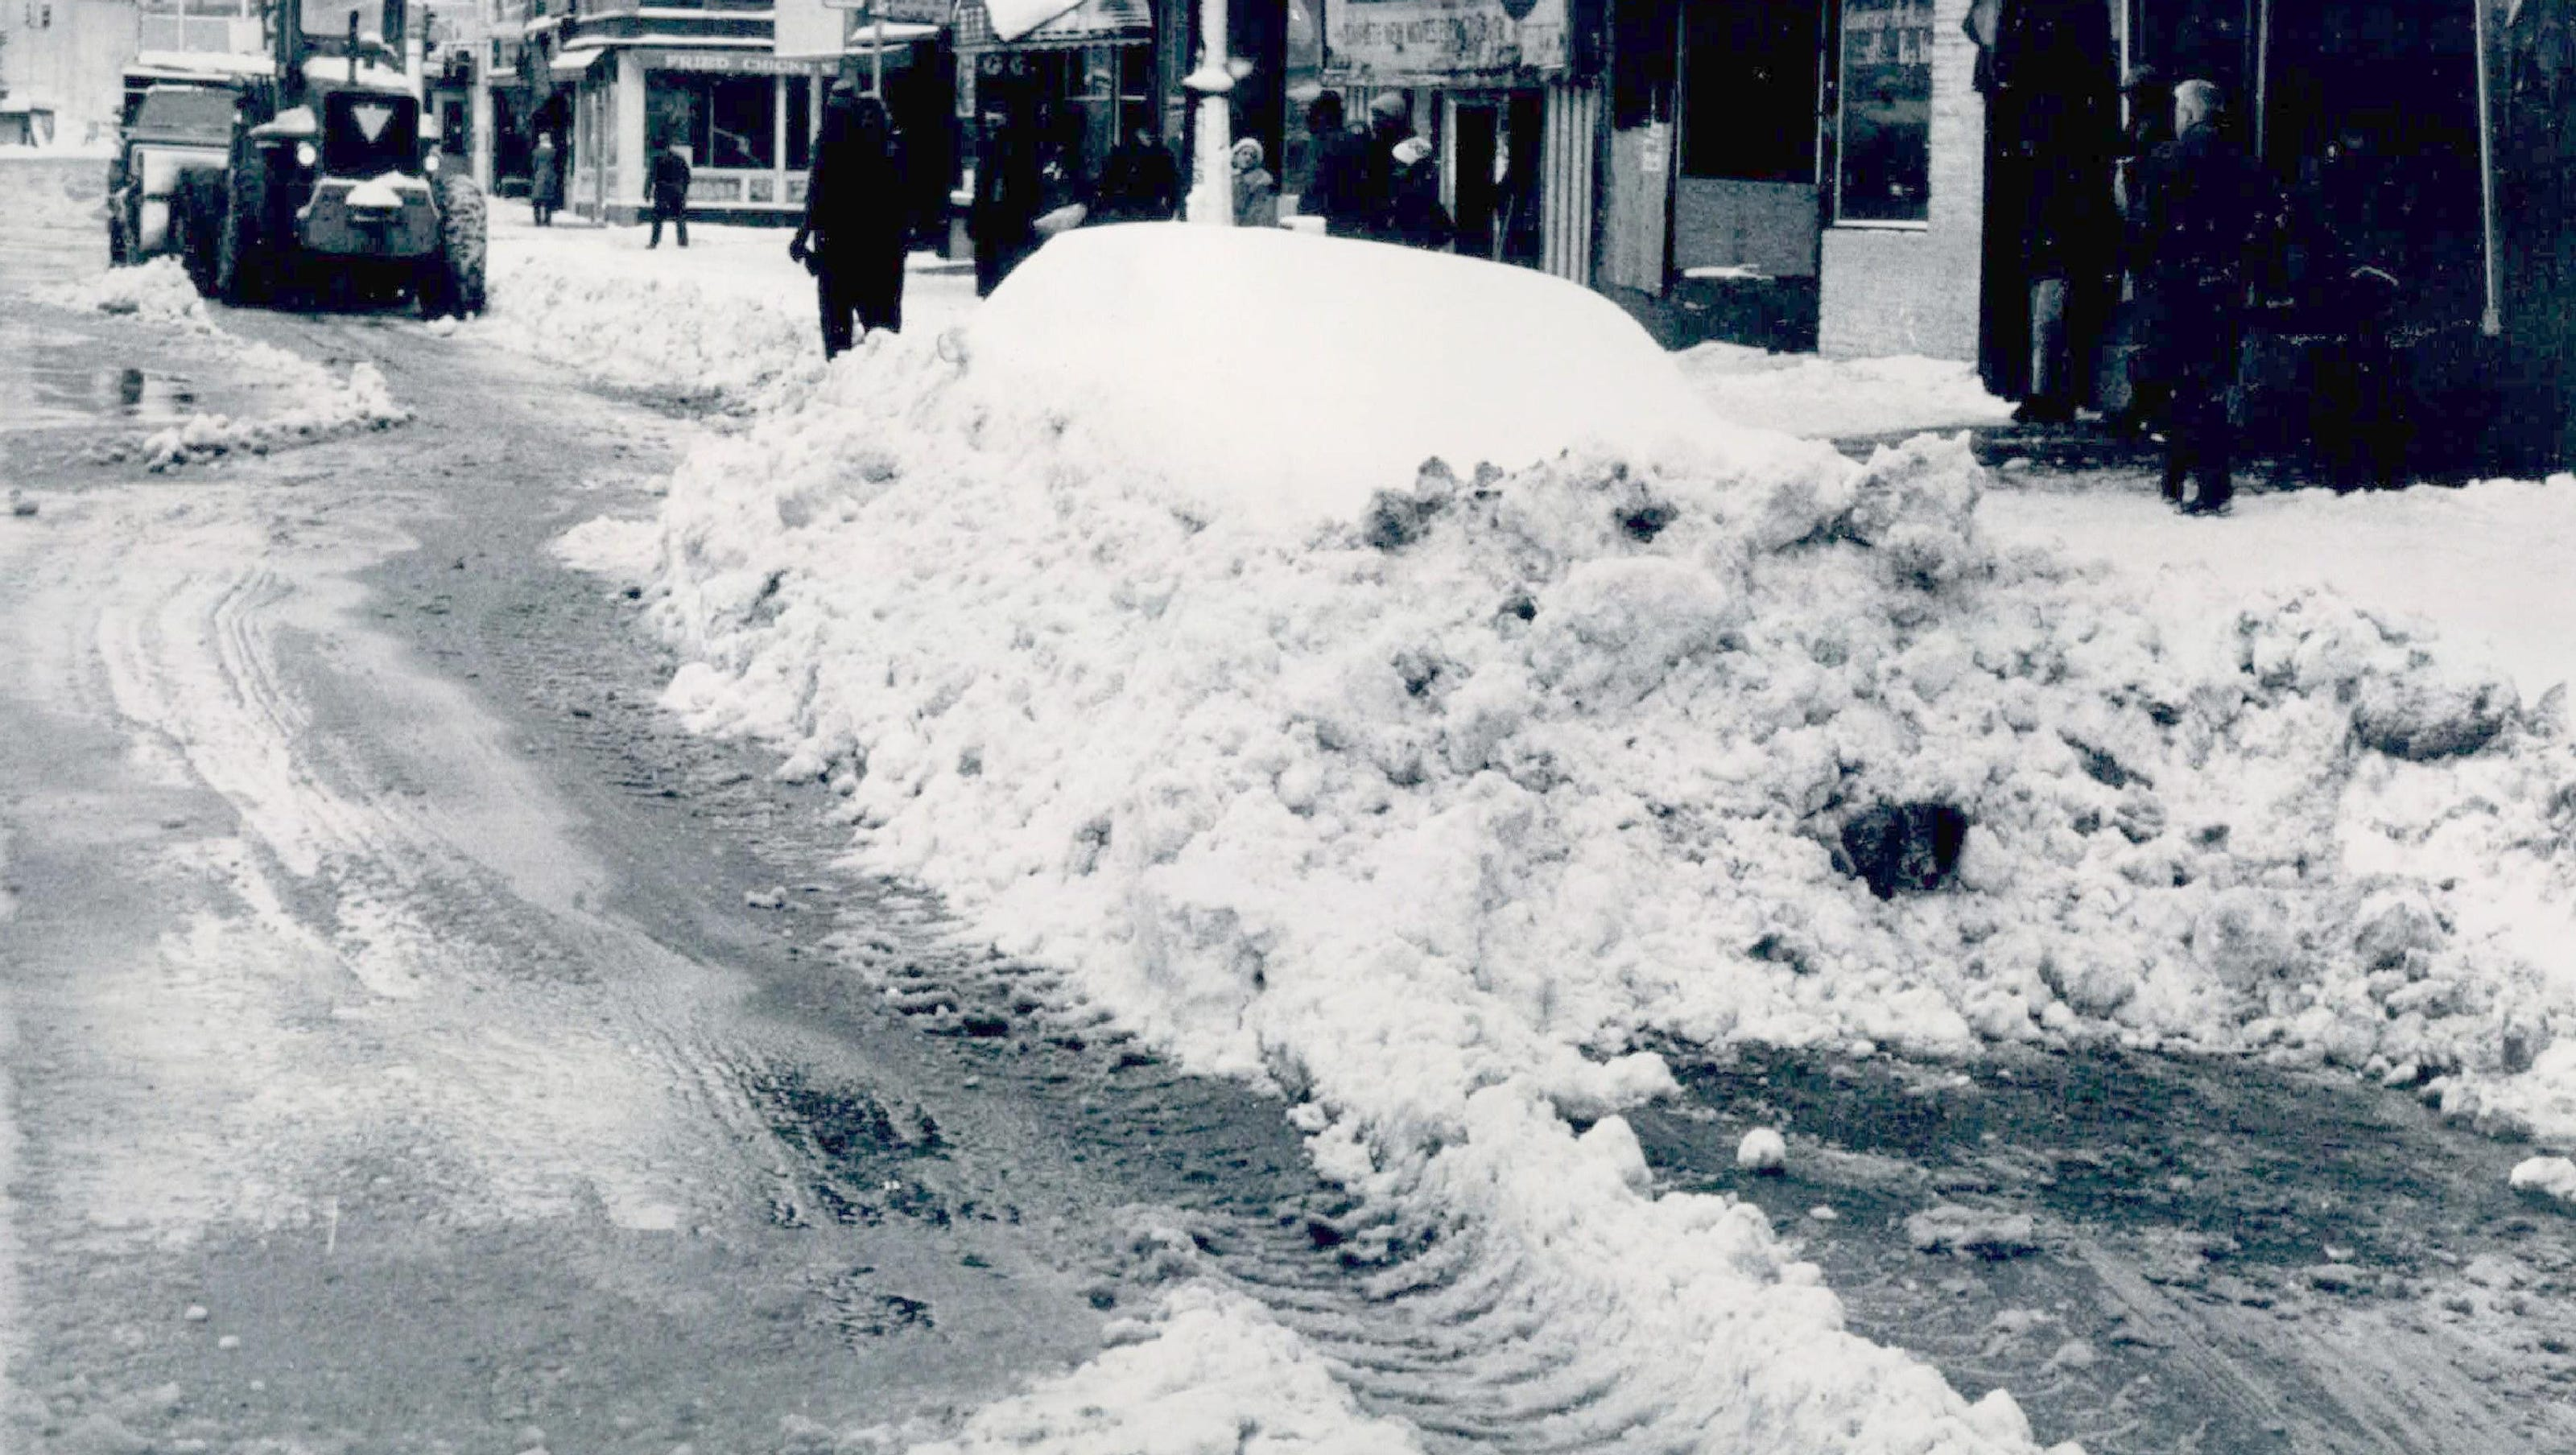 Michigan S Blizzard Of 78 Retains Power To Captivate